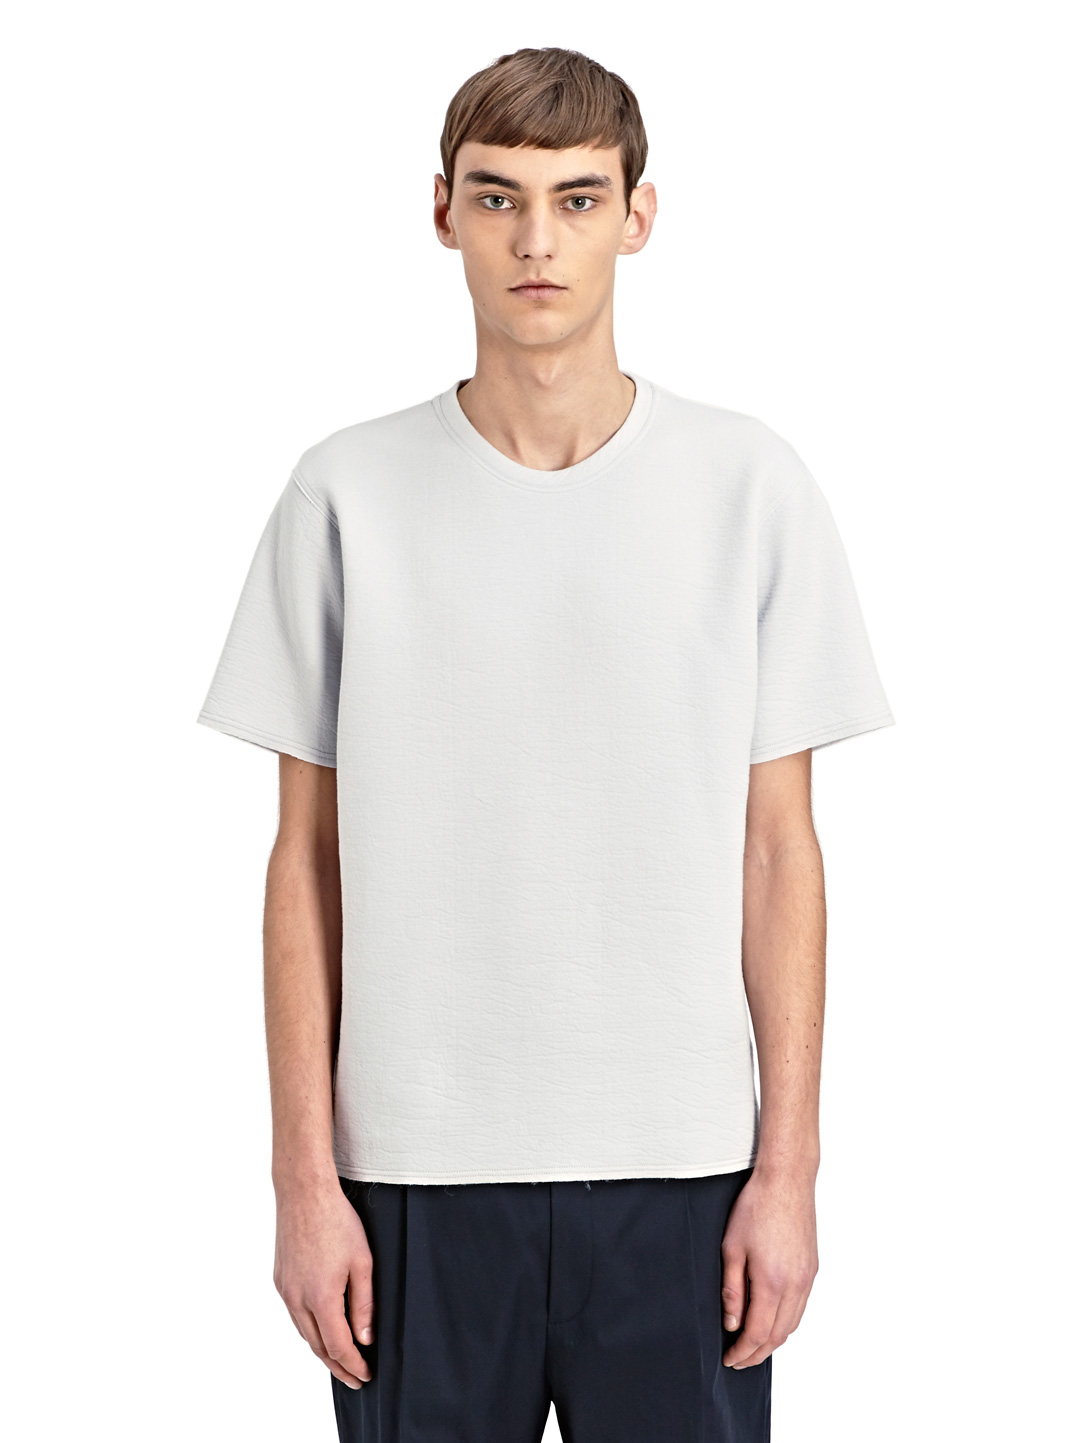 Shop Lanvin Simple Spring 2015 Men's T-Shirt Styles